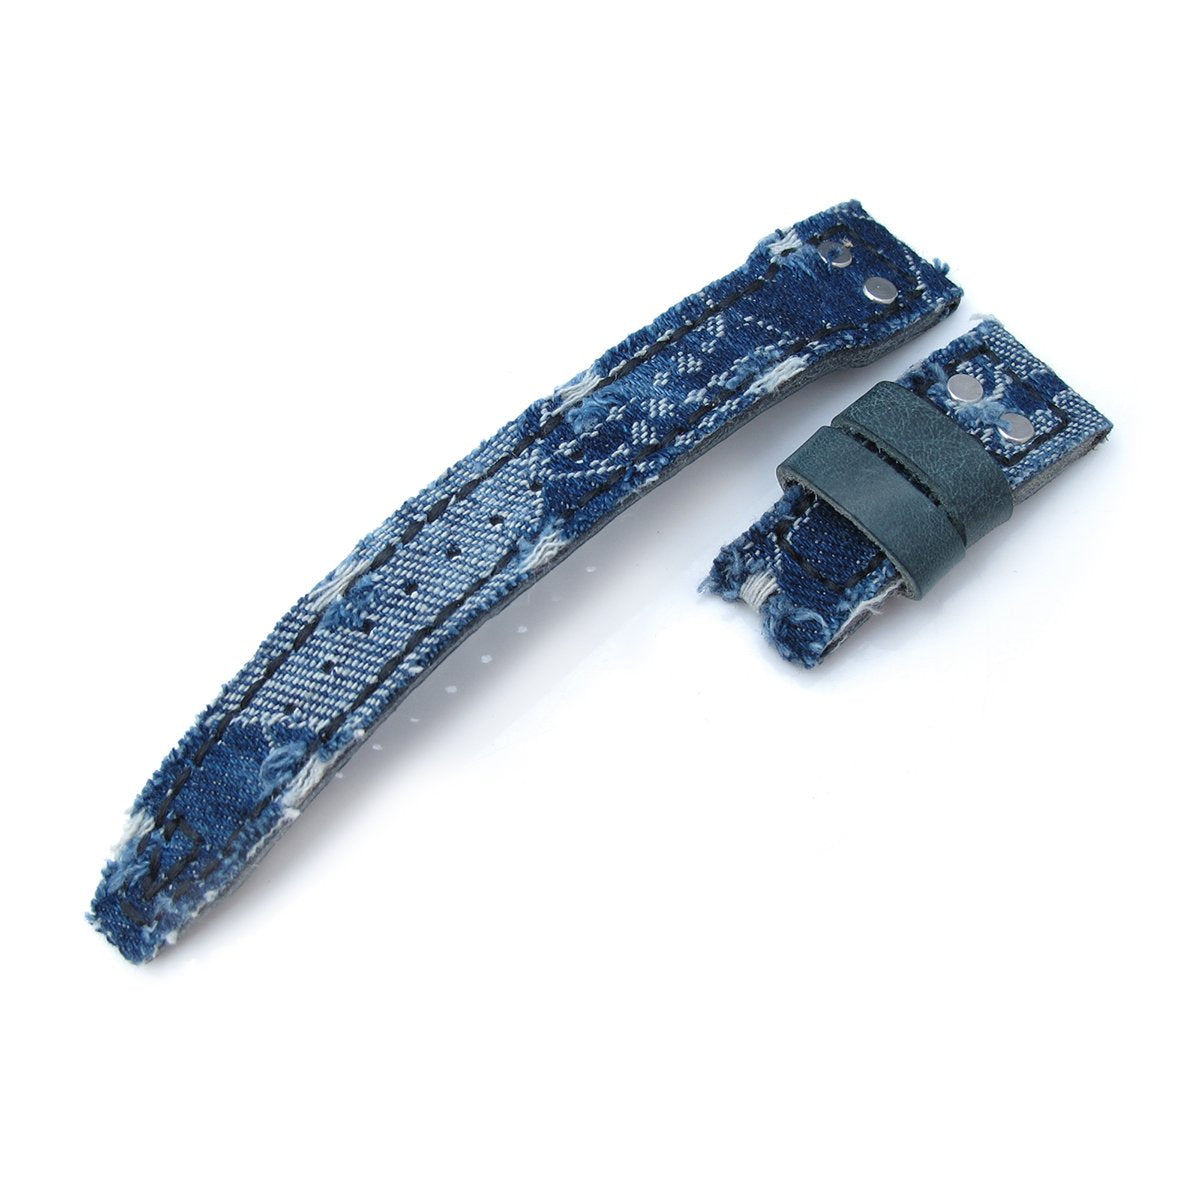 22mm MiLTAT Blue Distressed Denim IWC Big Pilot replacement Strap Rivet Lug Strapcode Watch Bands